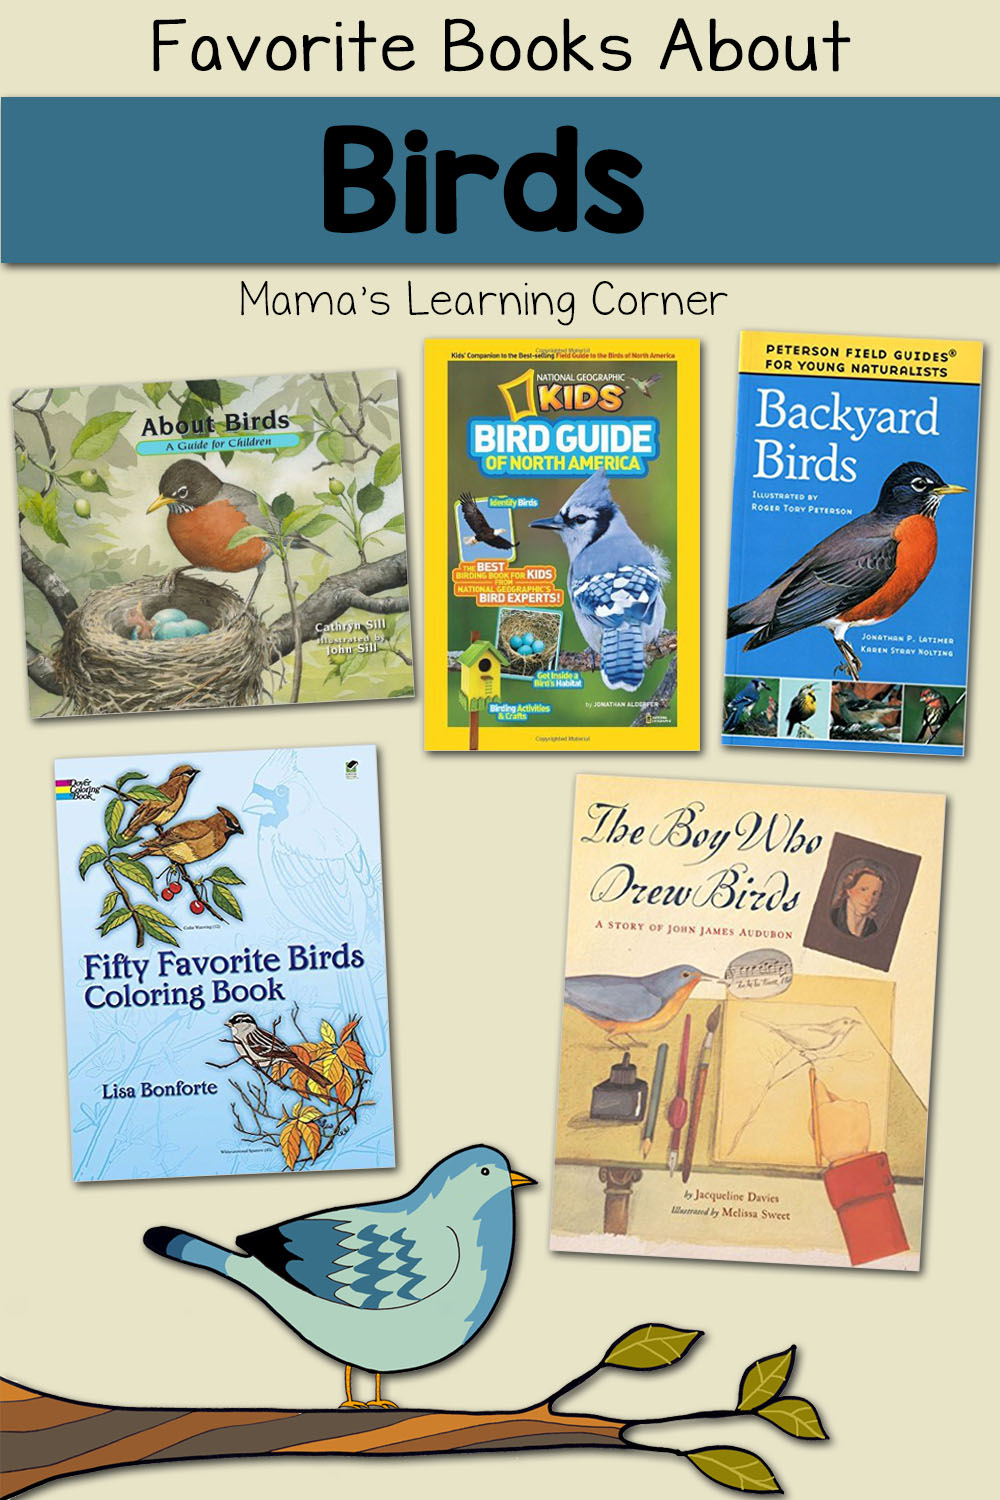 medium resolution of Favorite Books to Learn About Birds - Mamas Learning Corner